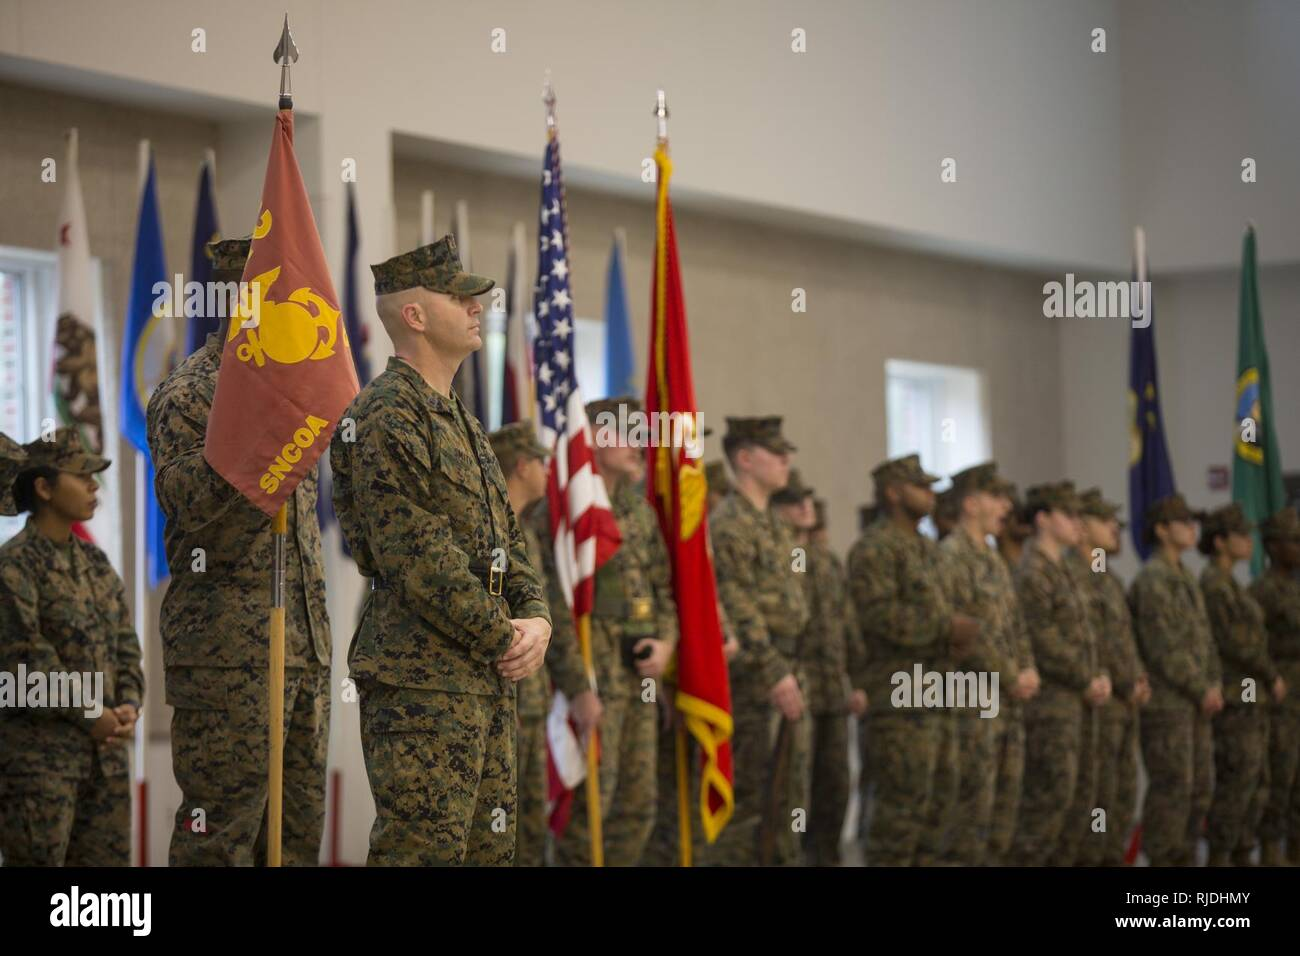 Marines stand in formation awaiting the beginning of a